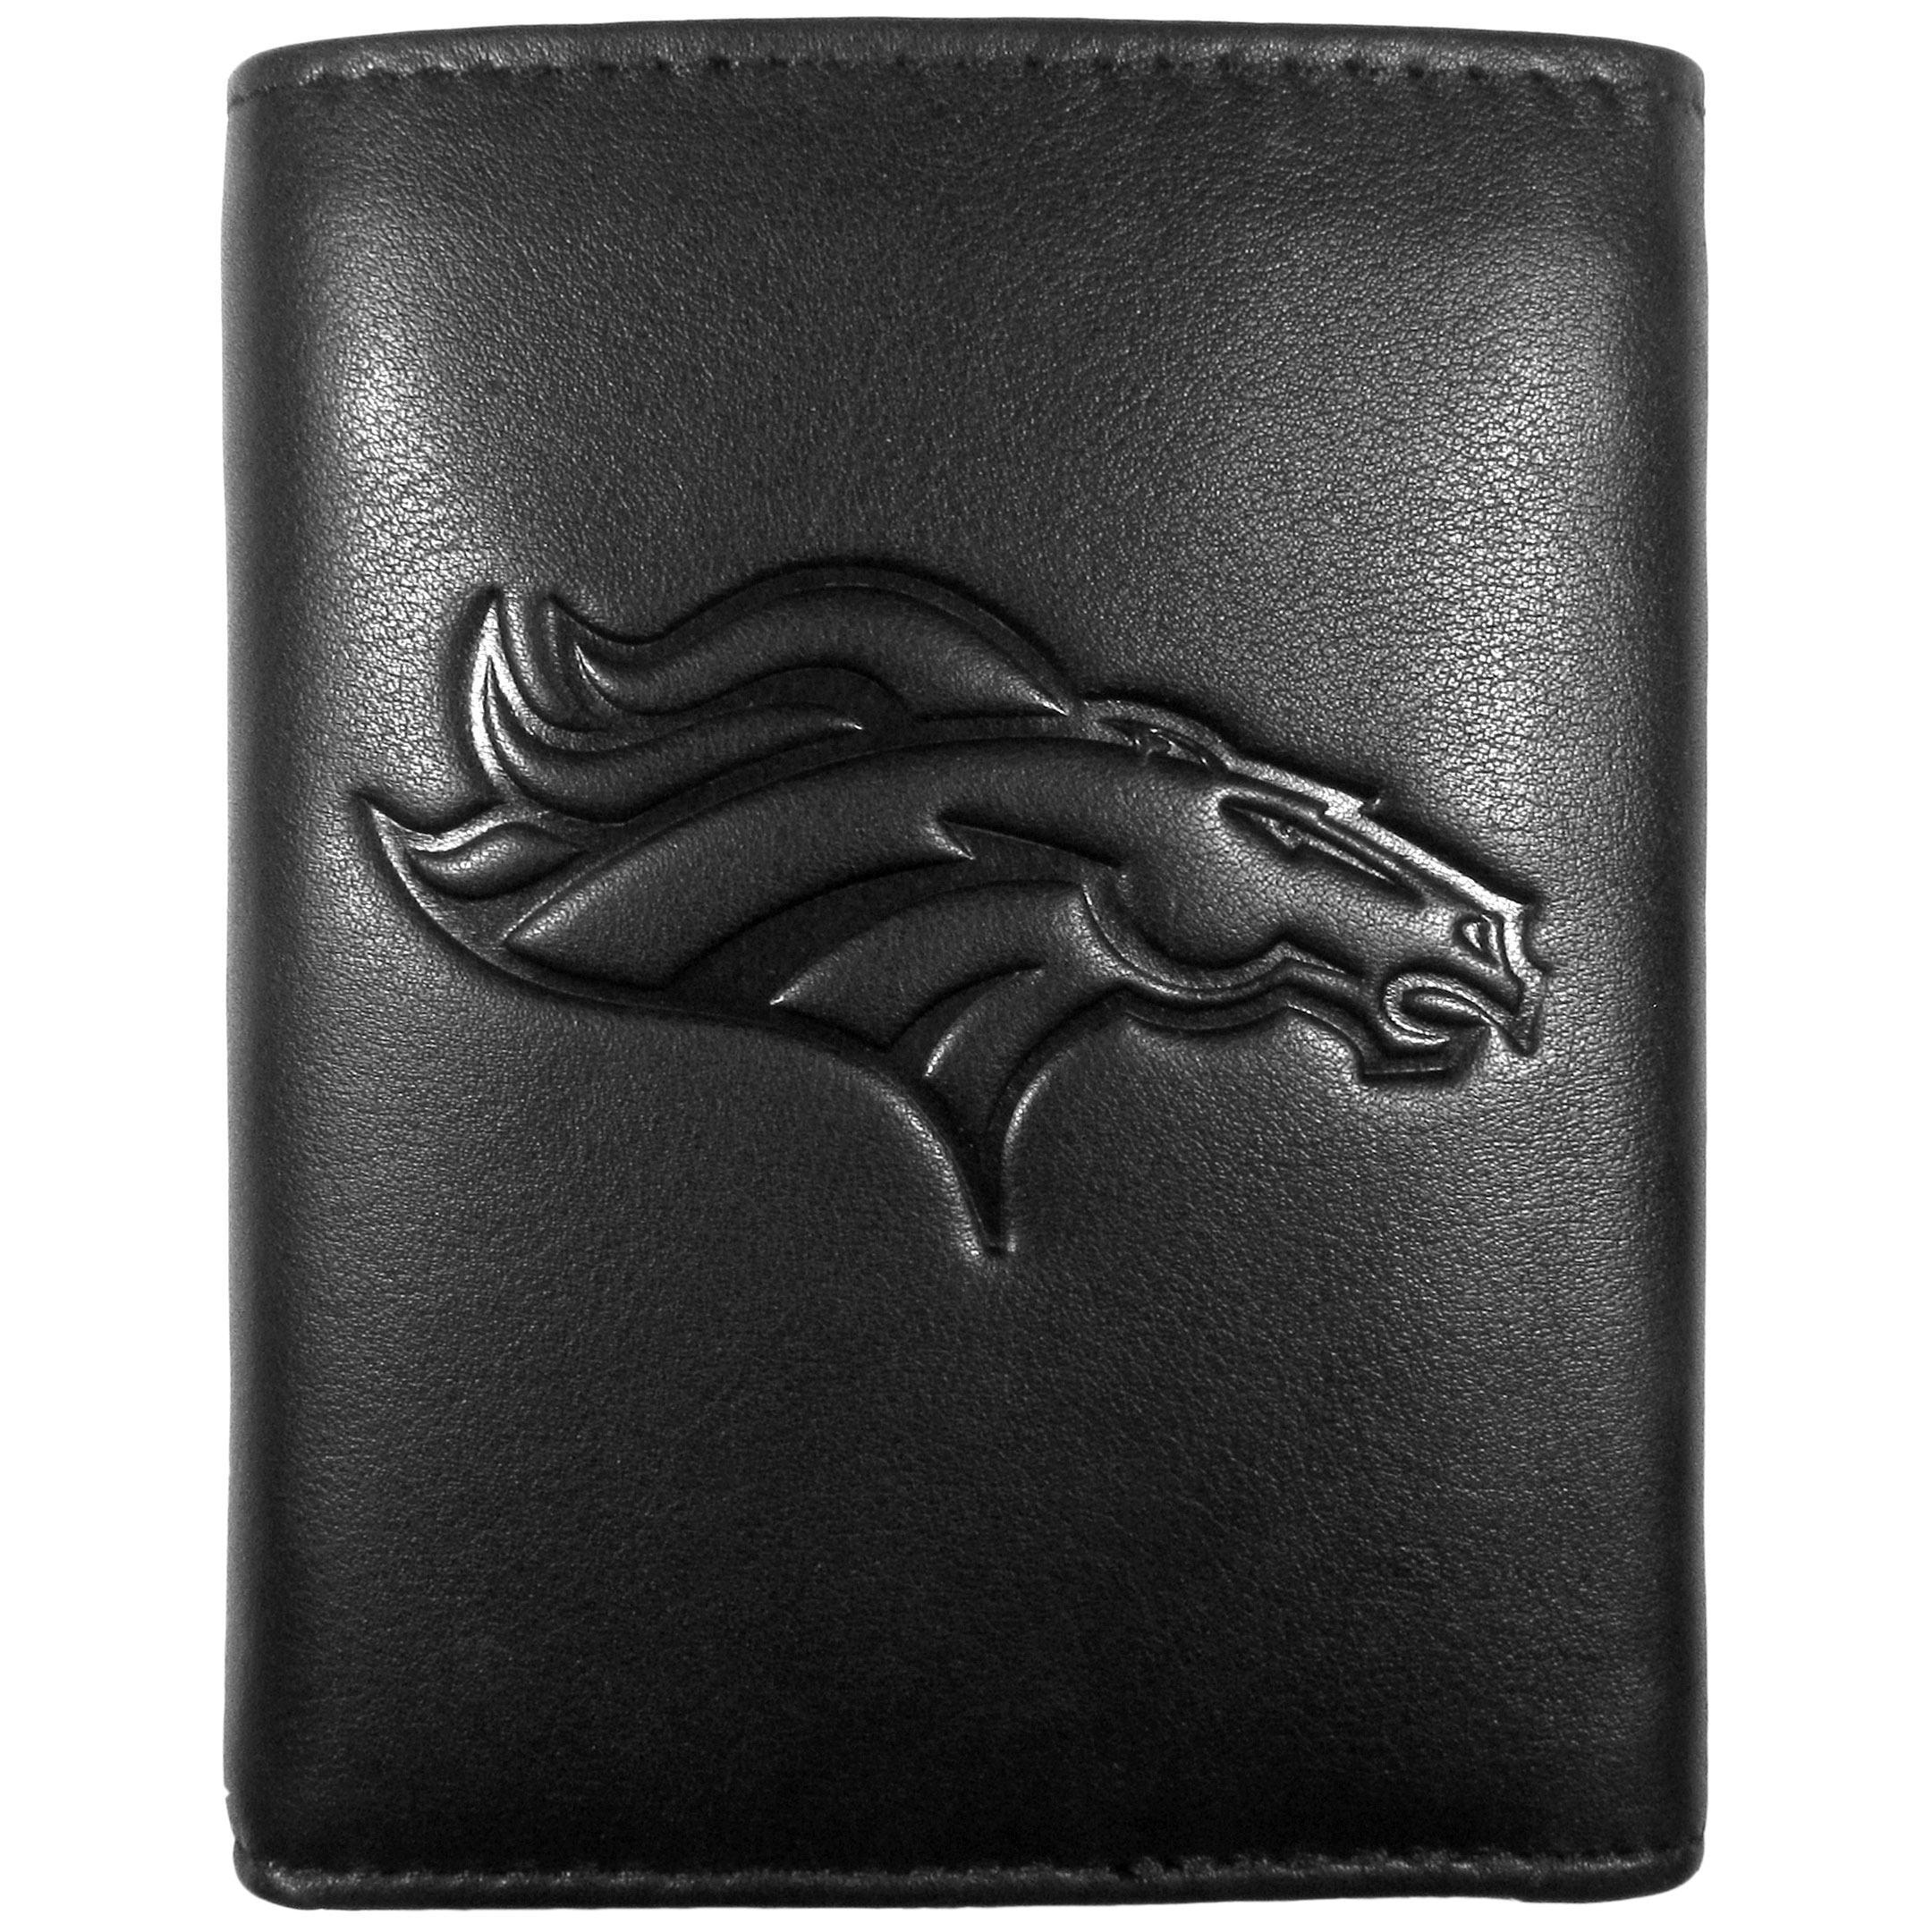 Denver Broncos Embossed Leather Tri-fold Wallet - This stylish leather wallet is made of high quality leather with a supple feel and classic look. The front of the tri-fold style wallet has a deeply embossed Denver Broncos logo. The billfold is packed with features that will allow to keep organized, lots of credit card slots, windowed ID slot, large pockets for bills and a removable sleeve with extra slots for even more storage. This is a must-have men's fashion accessory that would make any fan very proud to own.